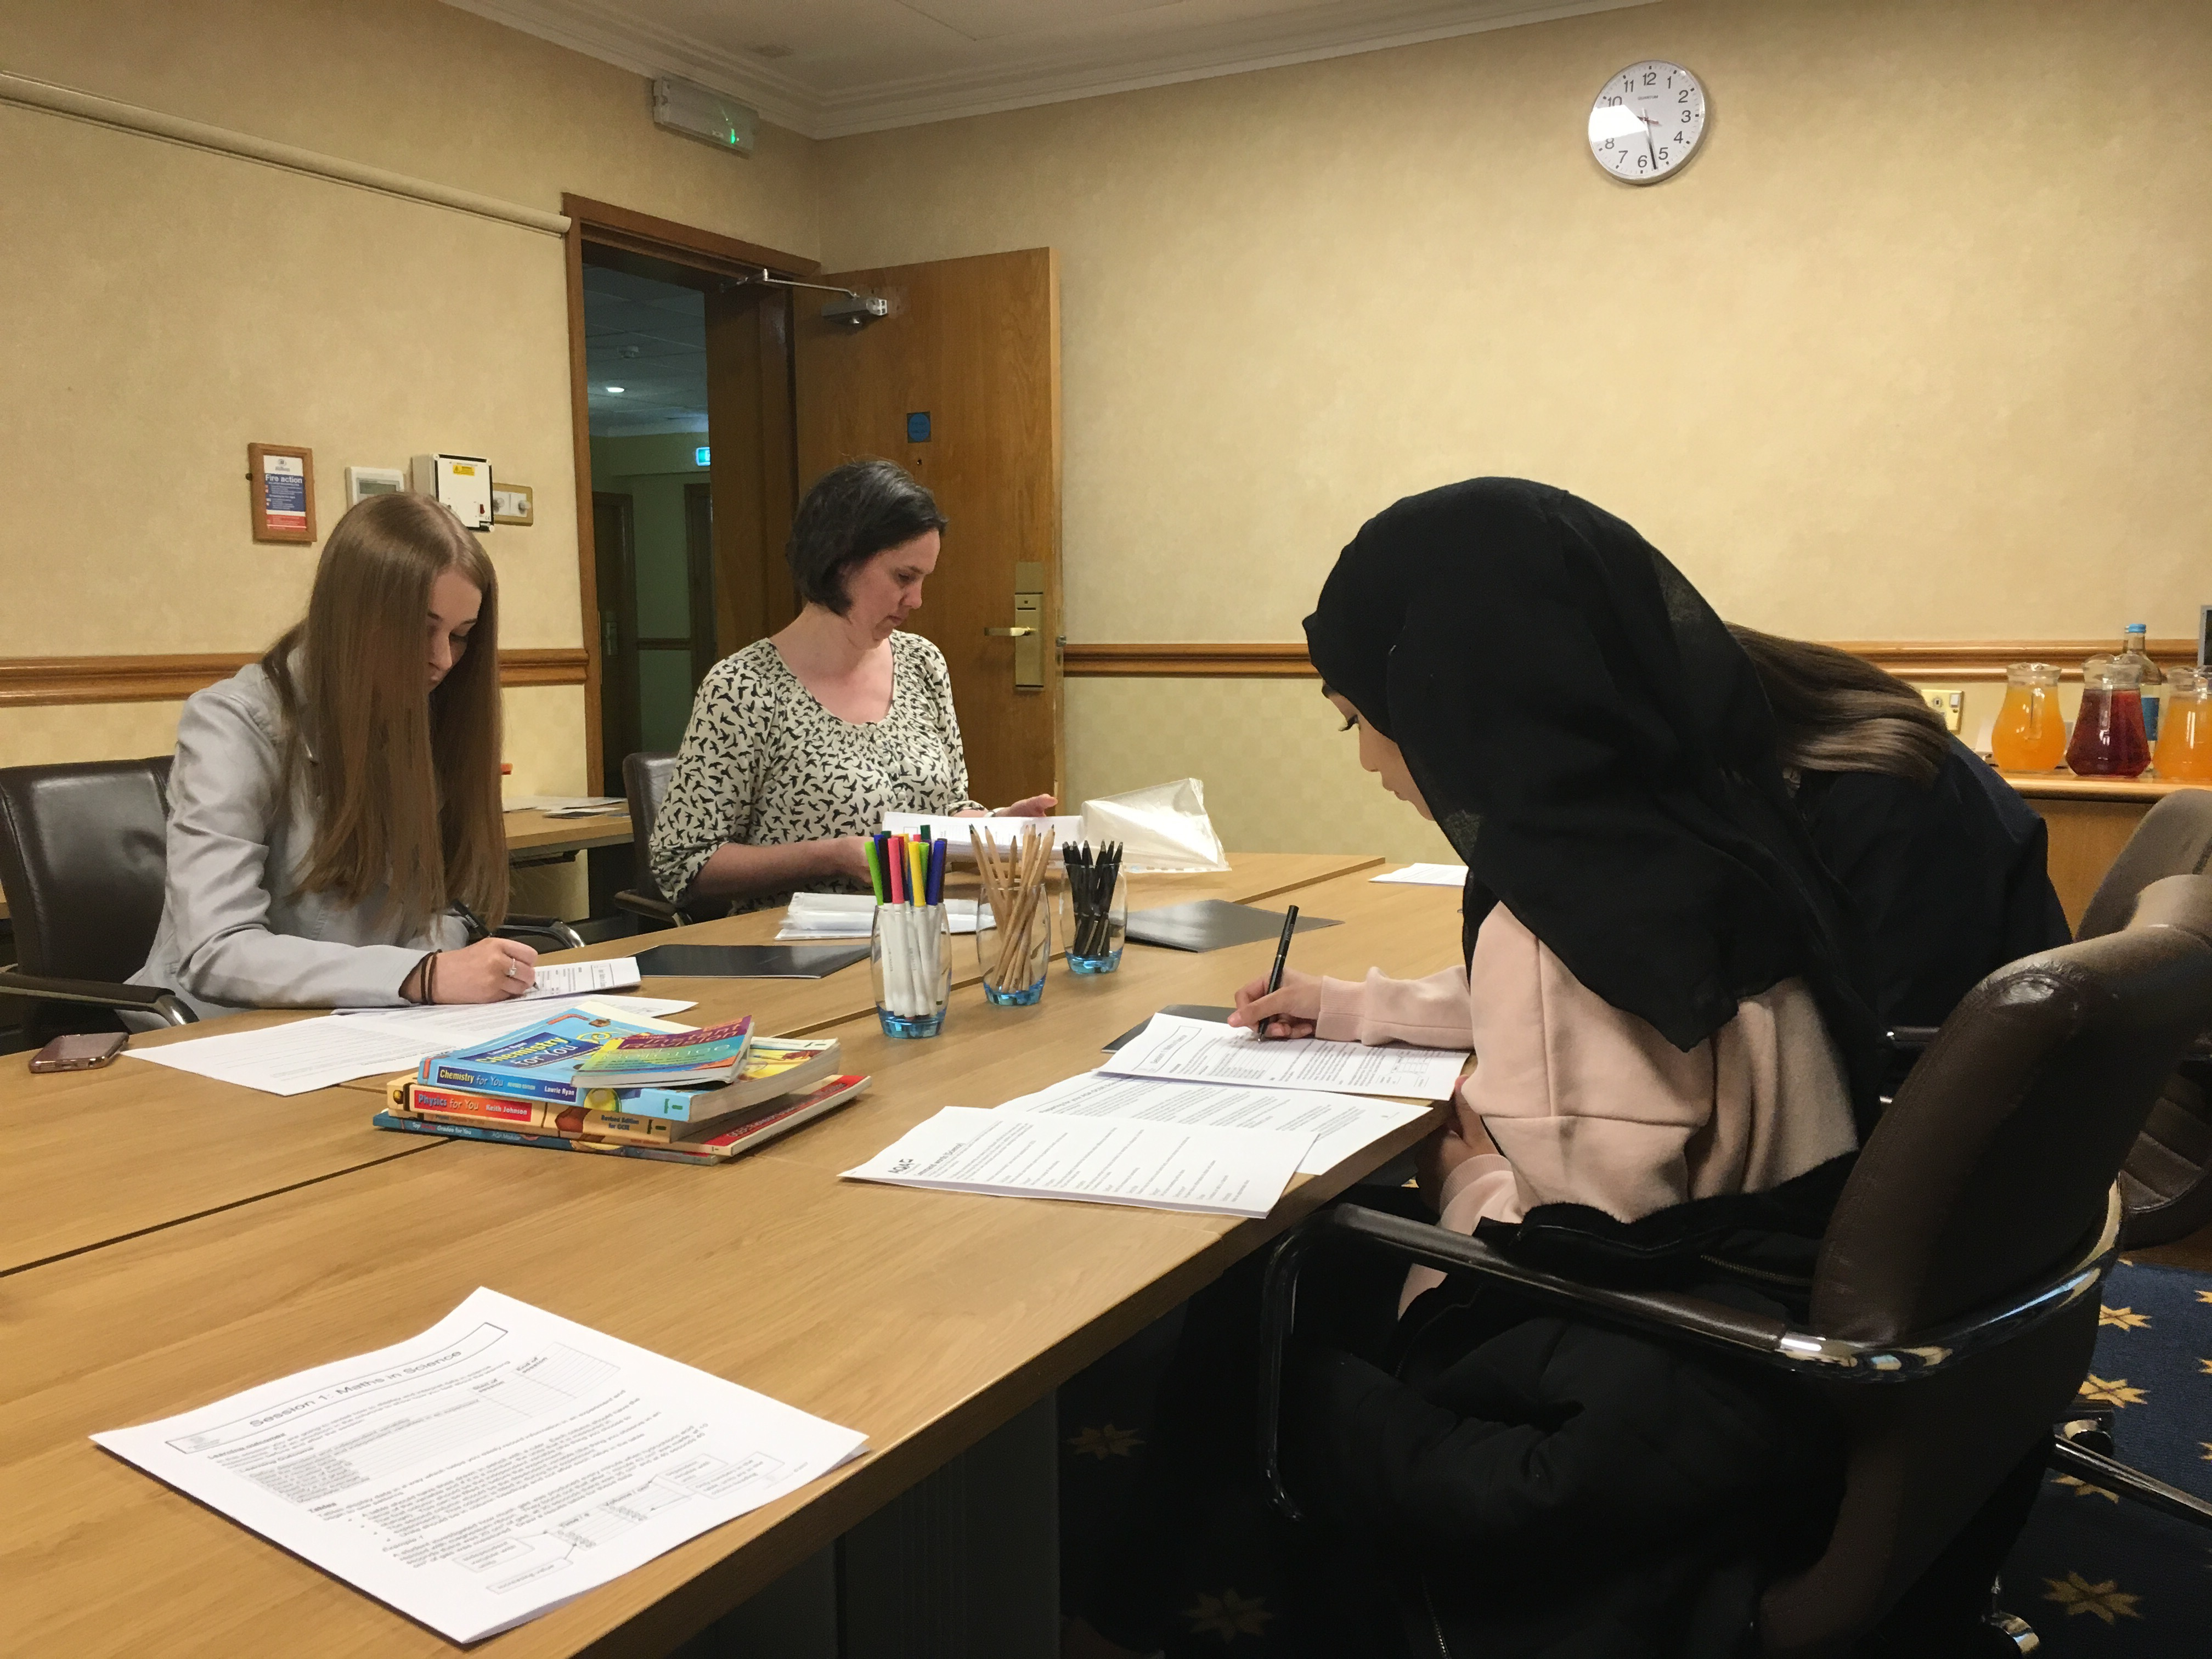 Fasttrack science courses fasttrack science the intensive gcse revision course contains a variety of interactive techniques with a clear exam focus are used to revise the key ideas and skills to put publicscrutiny Images